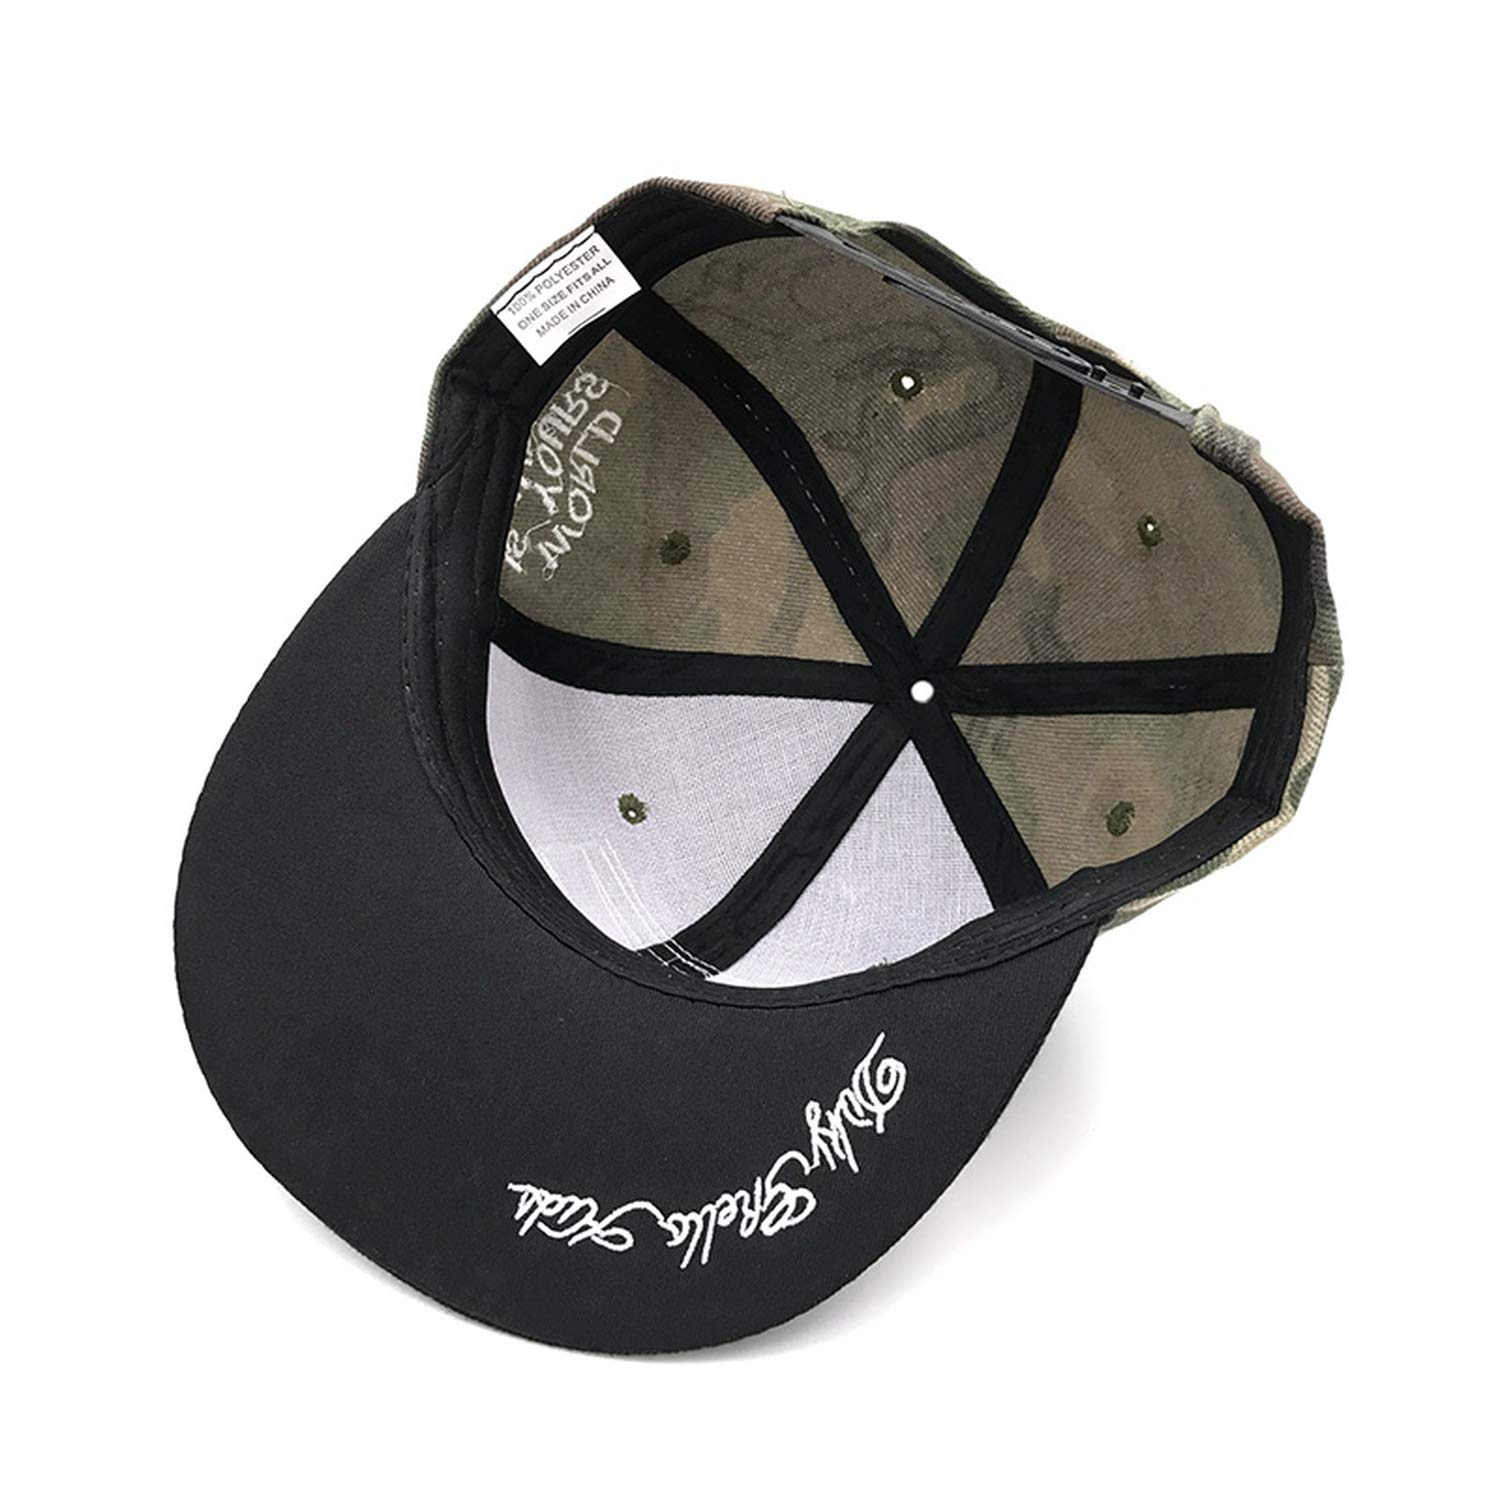 Eric Carl Snapback Caps Flat Hip Hop Baseball Cap Casquette Gorras Hat Adult Camouflage Adjustable Planas Hats at Amazon Womens Clothing store: